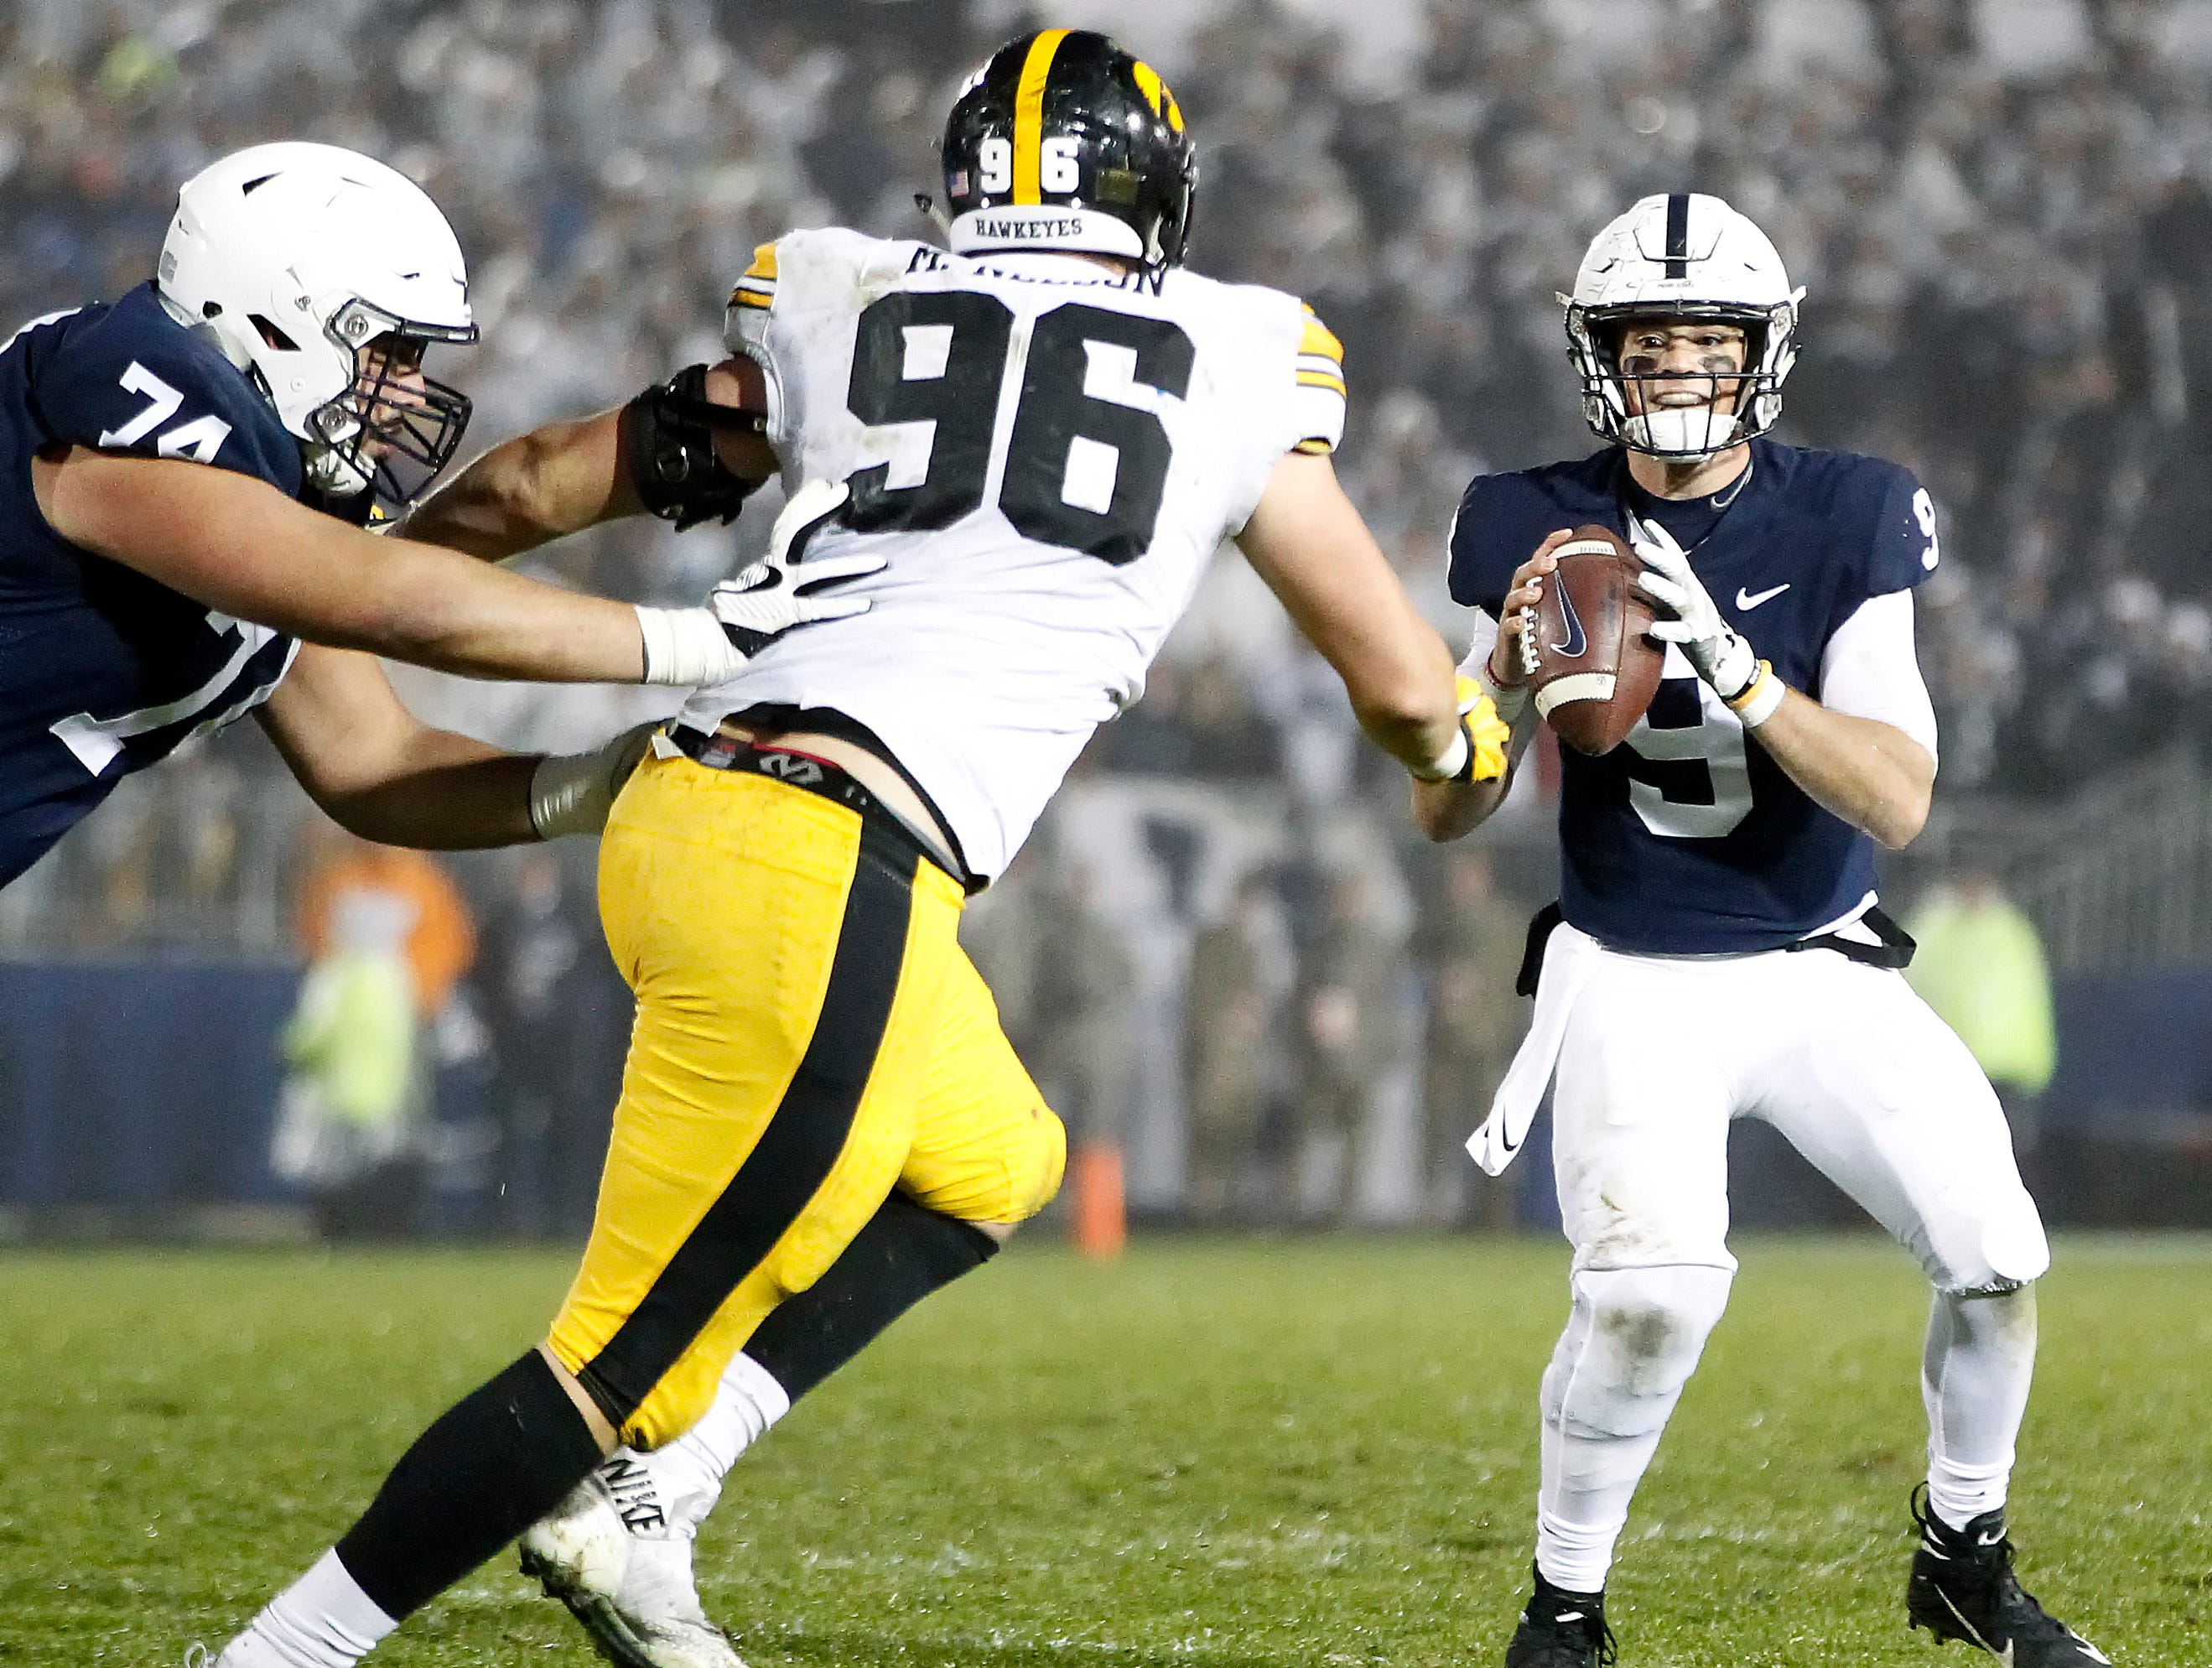 Penn State quarterback Trace McSorley (9) looks to pass as Iowa's Matt Nelson (96) applies pressure during the second half of an NCAA college football game in State College, Pa., Saturday, Oct. 27, 2018. (AP Photo/Chris Knight)